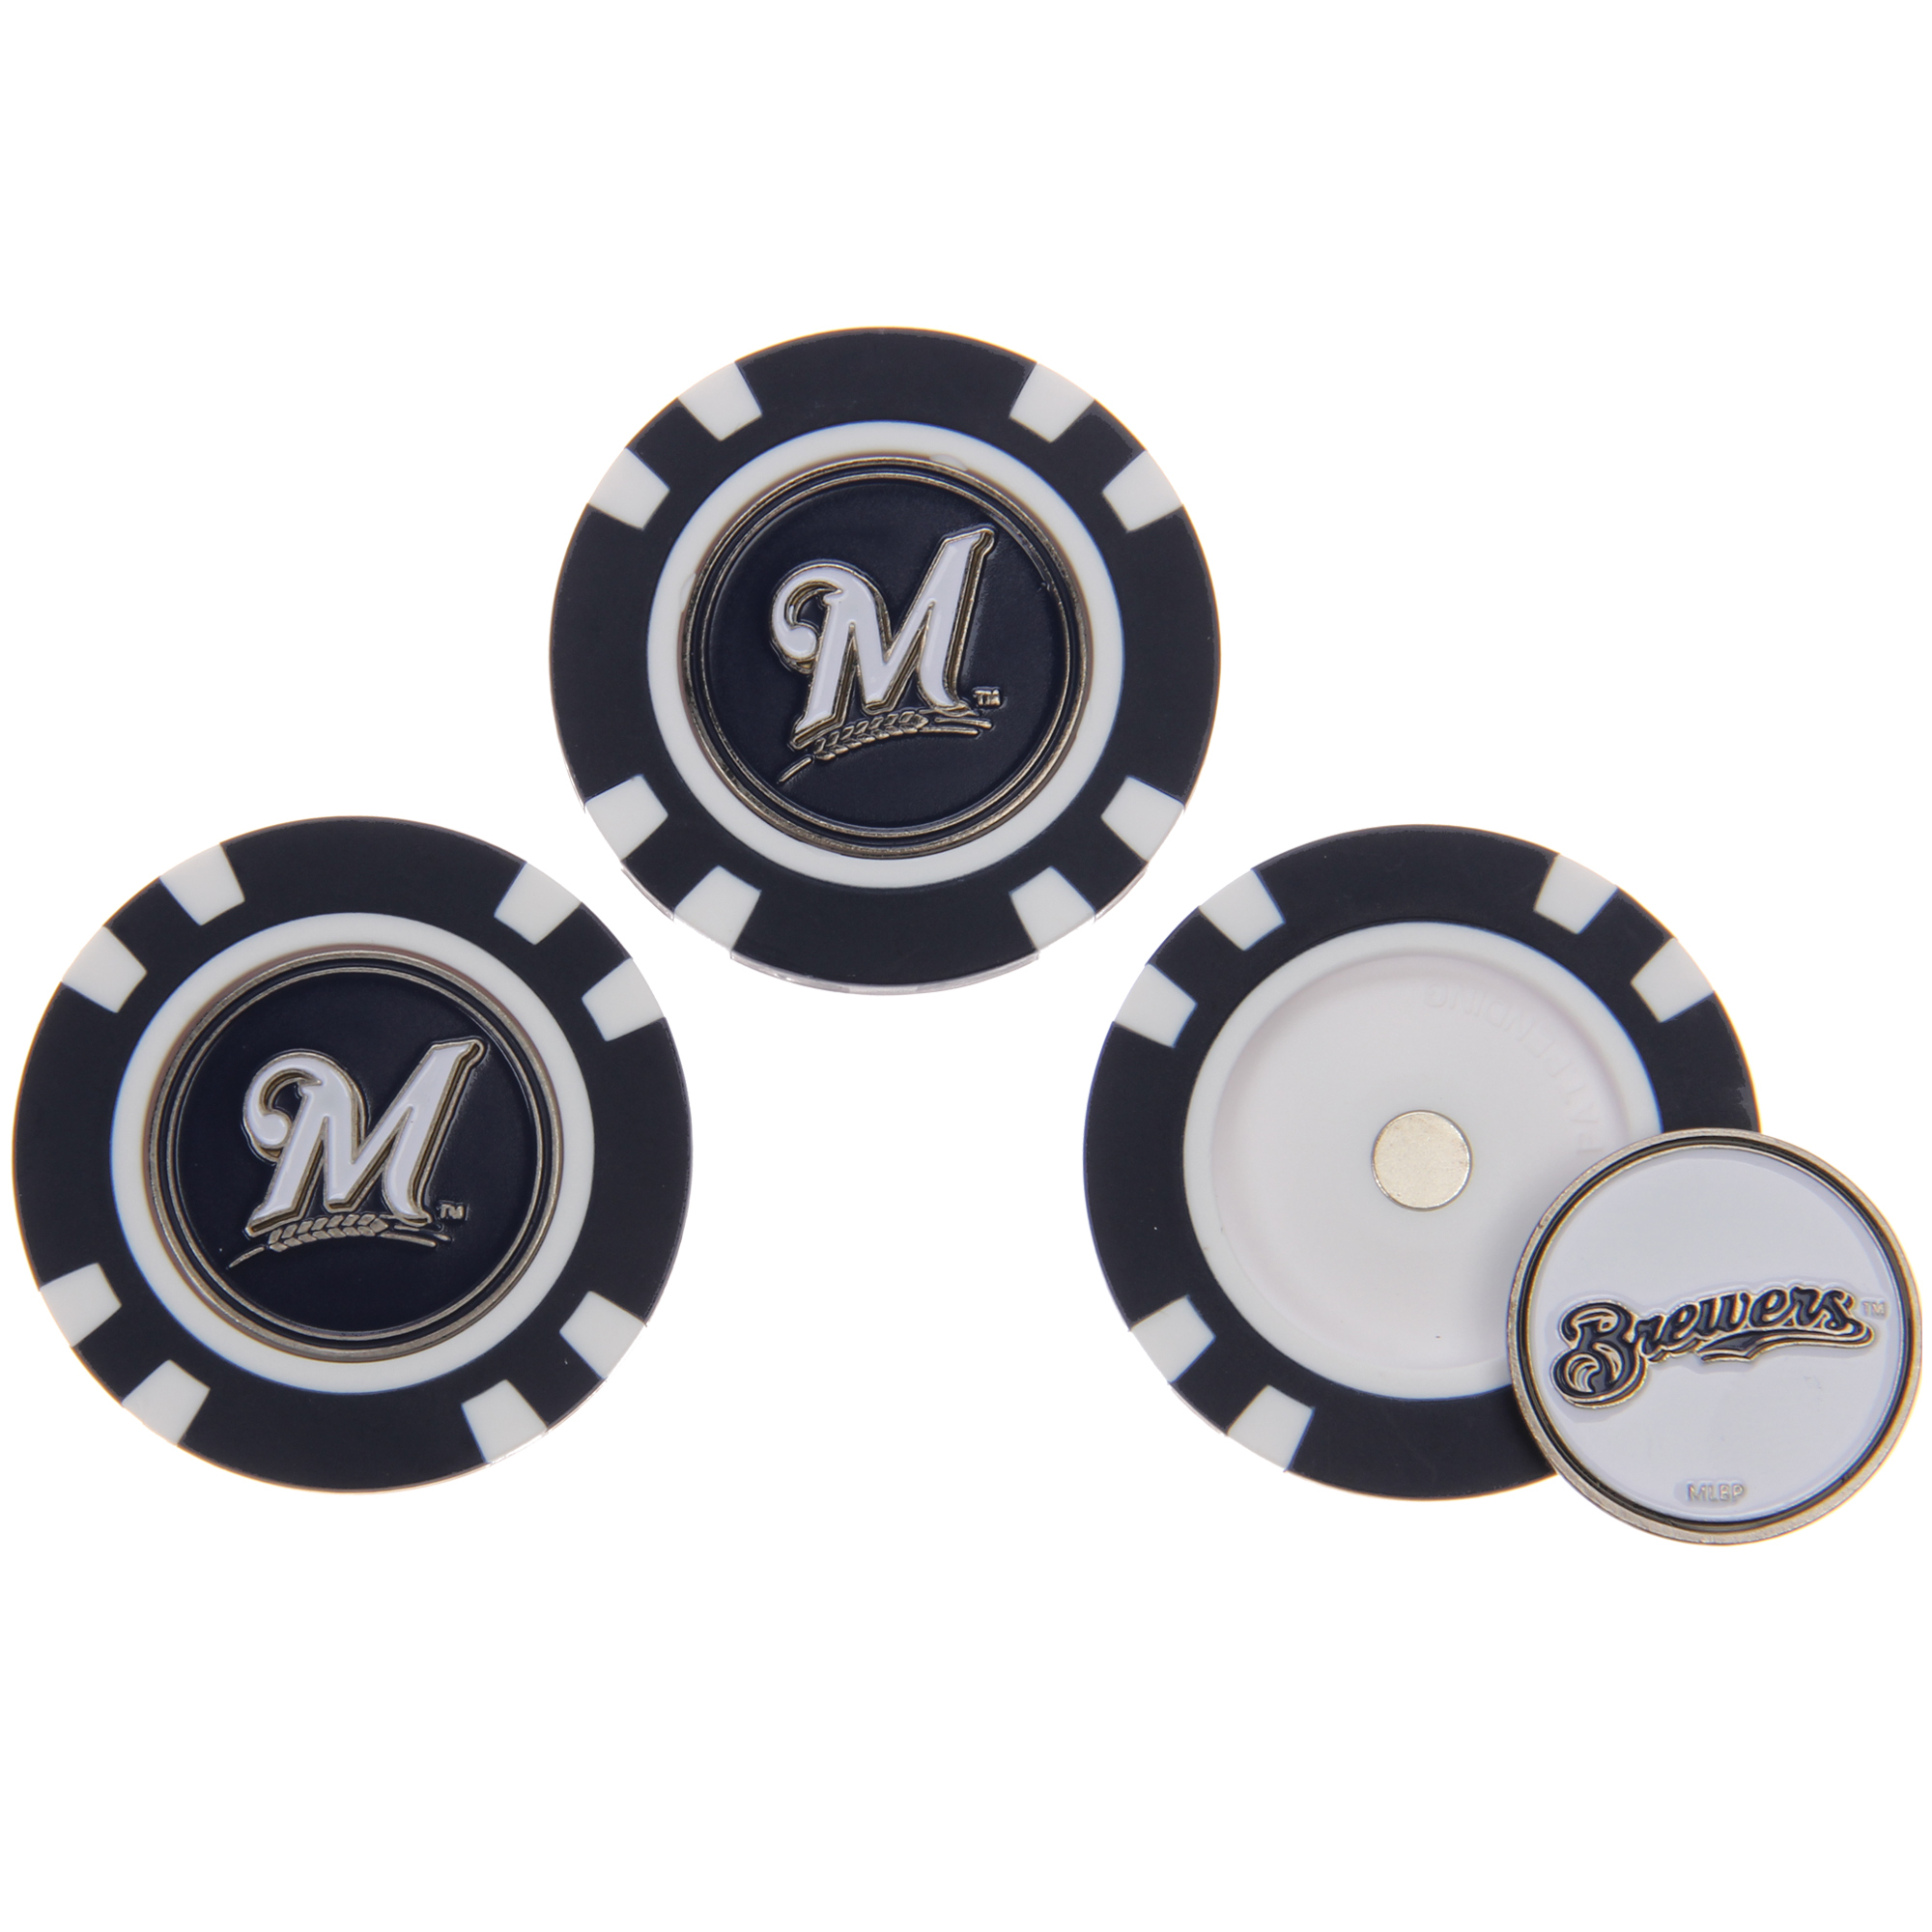 Milwaukee Brewers 3-Pack Poker Chip Golf Ball Markers - No Size